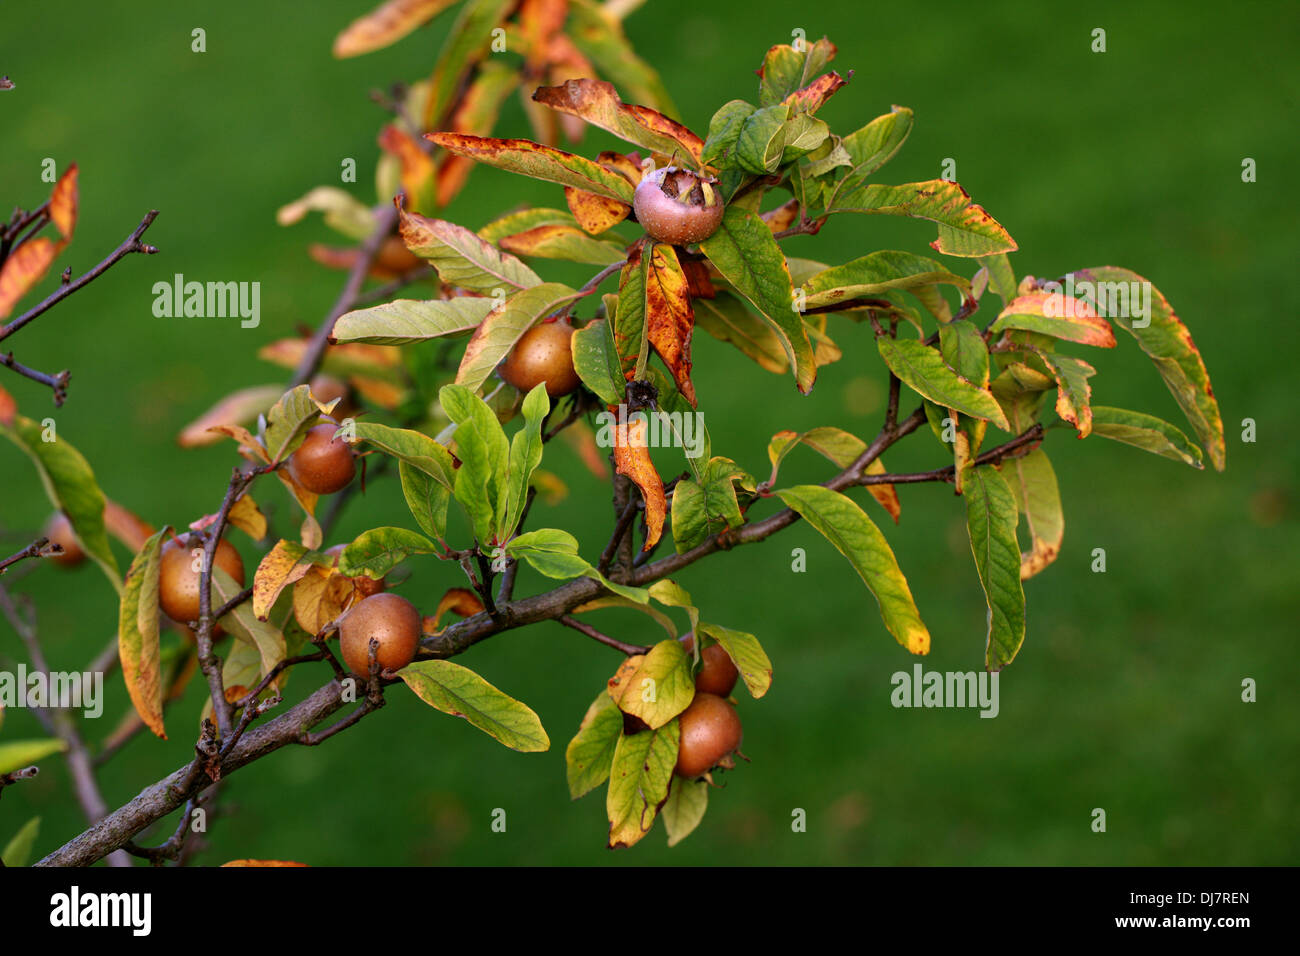 Common Medlar, Mespilus germanica, Rosaceae. Indigenous to southwest Asia and southeastern Europe. Stock Photo